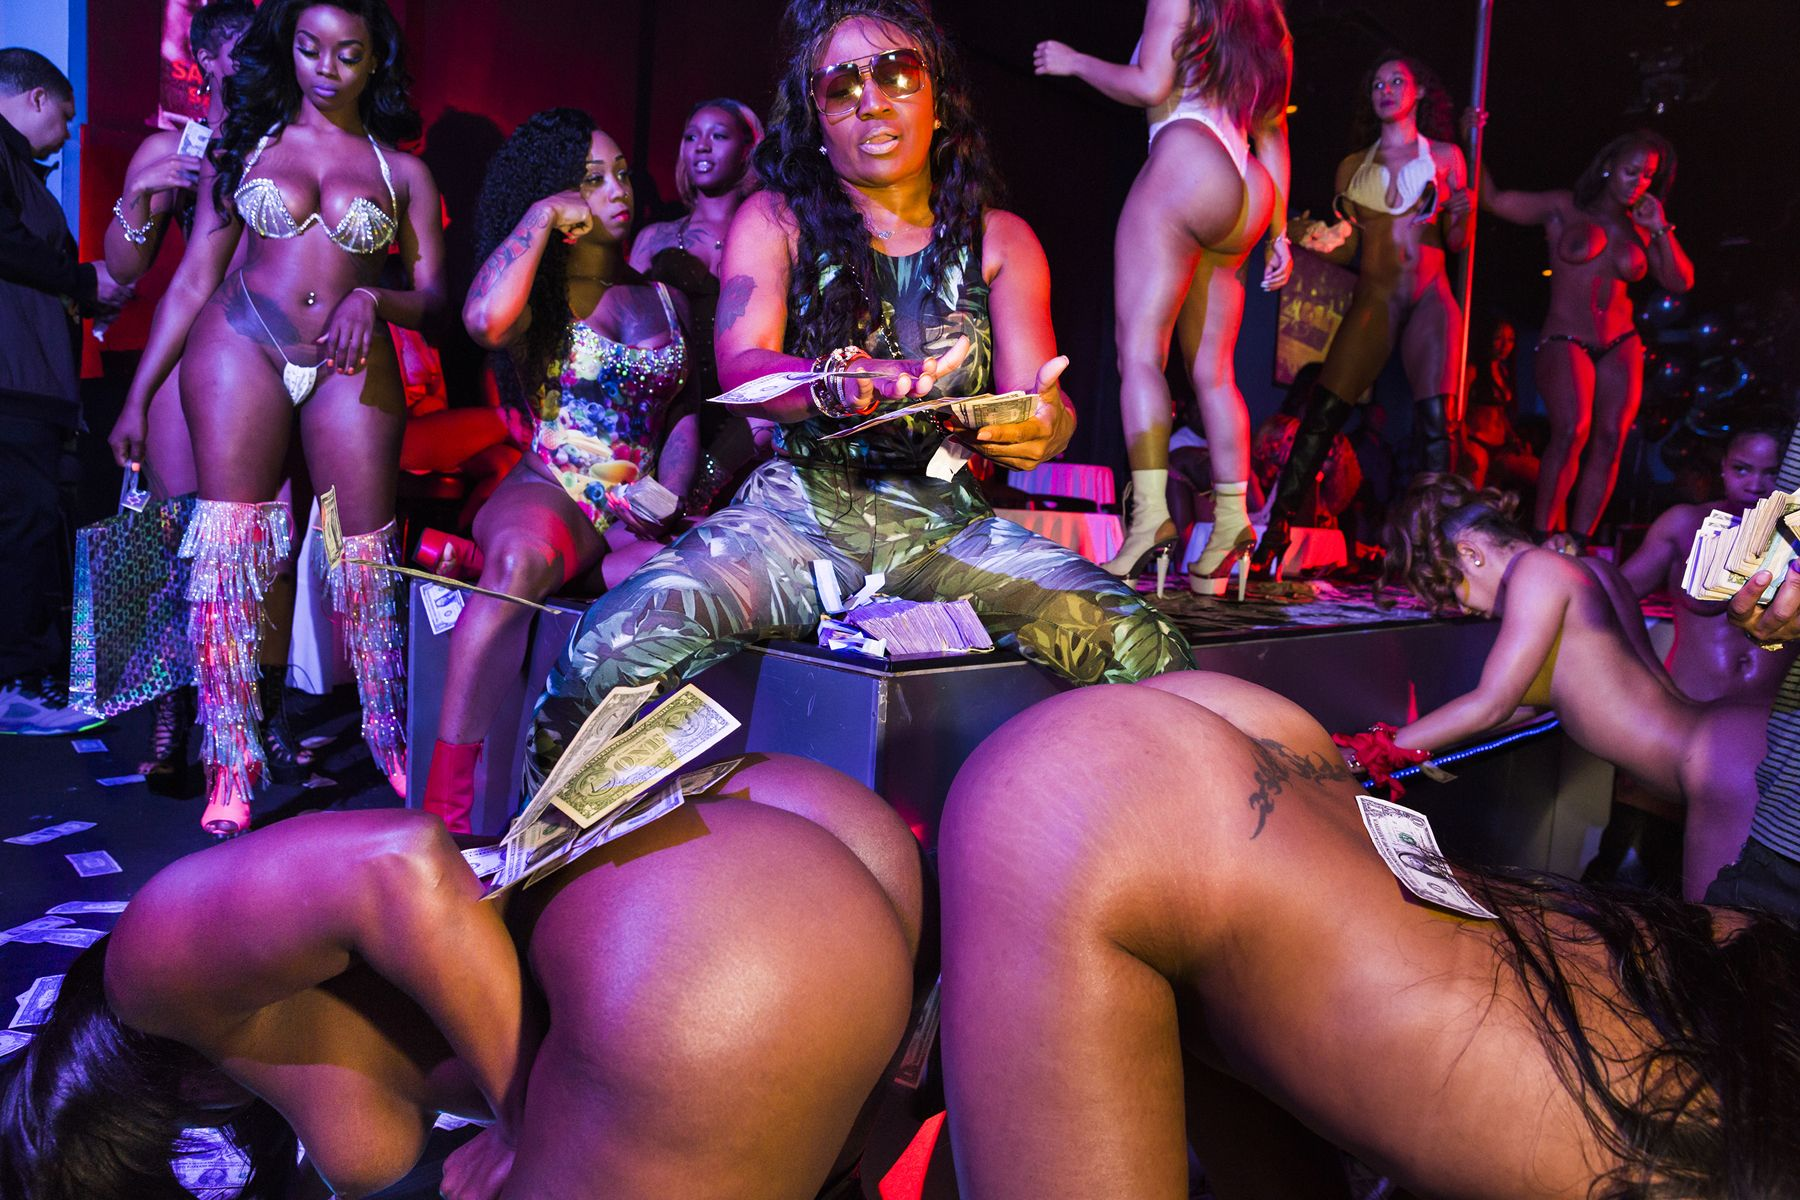 Former stripper OG India helps a rising rapper friend make it rain at Magic City Monday, the club's most important night for aspiring hip-hop stars to make an impression and encourage the strippers to request their music more often, Atlanta, 2015